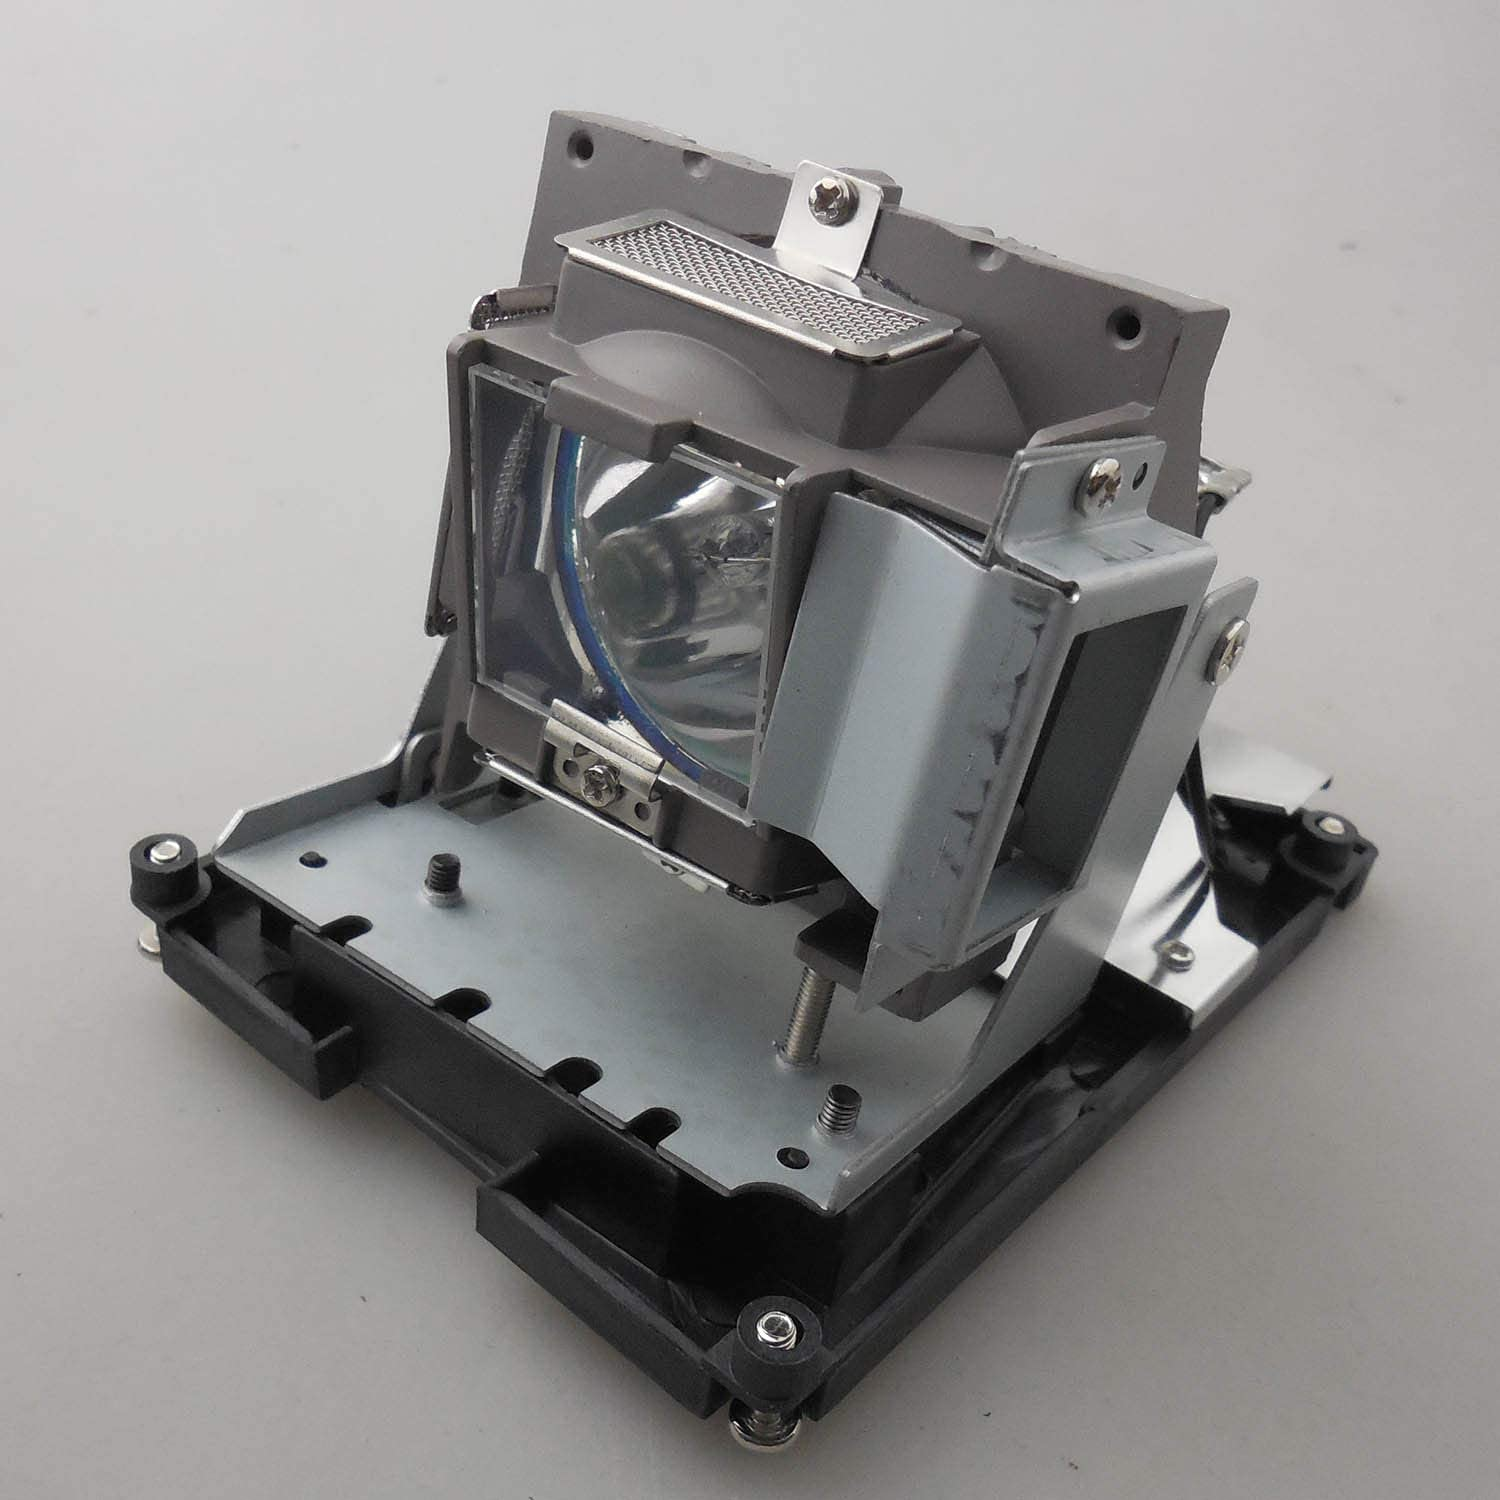 CTLAMP A+ Quality BL-FU310B Replacement Projector Lamp BL-FU310B Compatible Bulb with Housing for OPTOMA DH1017/EH500/X600 Projector